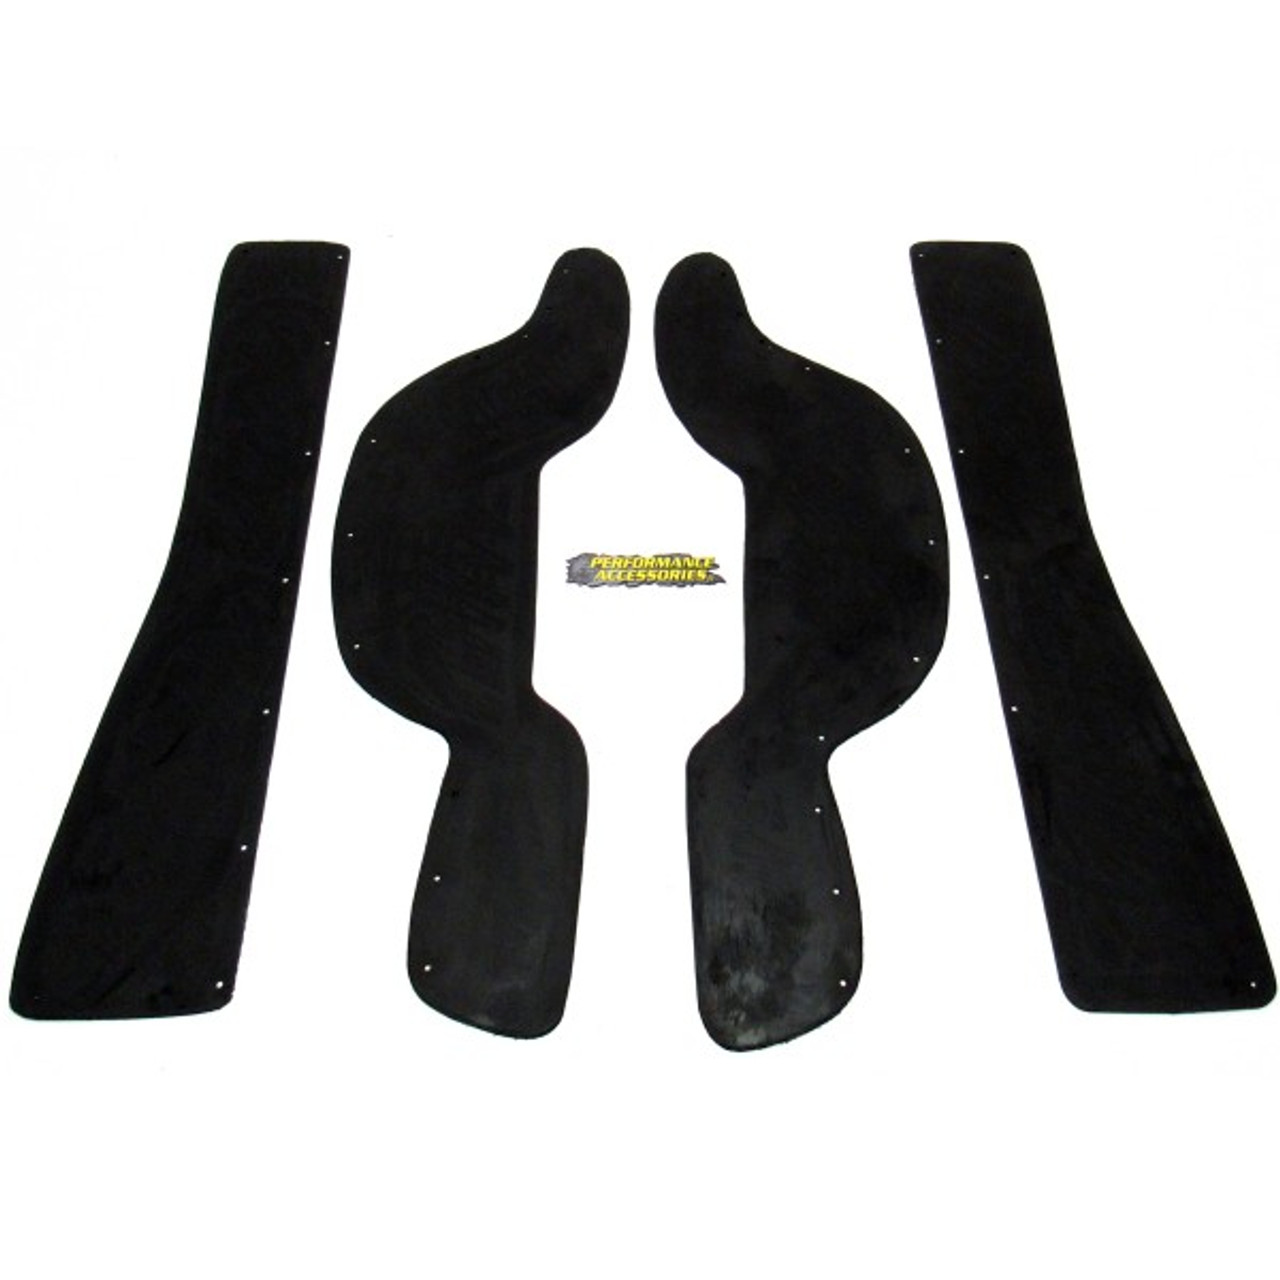 PA6622 Made in America 4WD Quad Cab Dodge Ram 1500 fits 2002 to 2002 Gap Guards for 3 body lift Performance Accessories